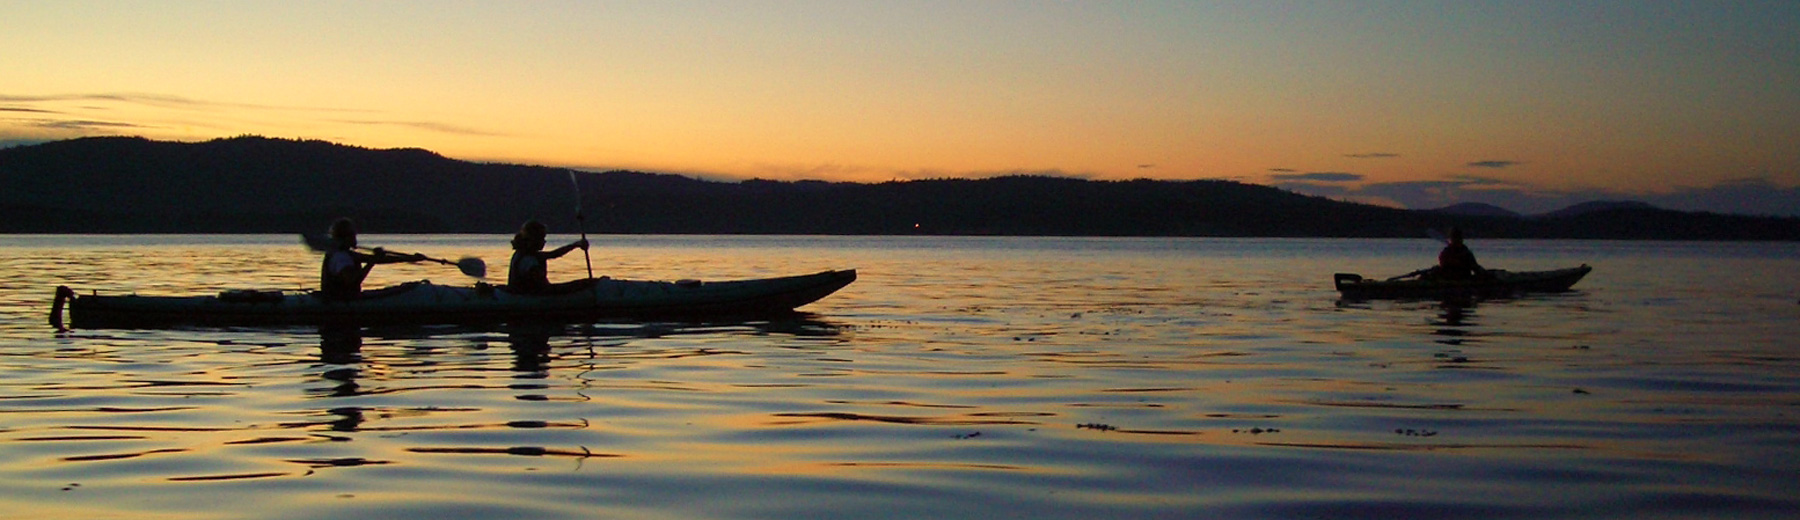 Kayakers in the sunset, Salt Spring Island, BC